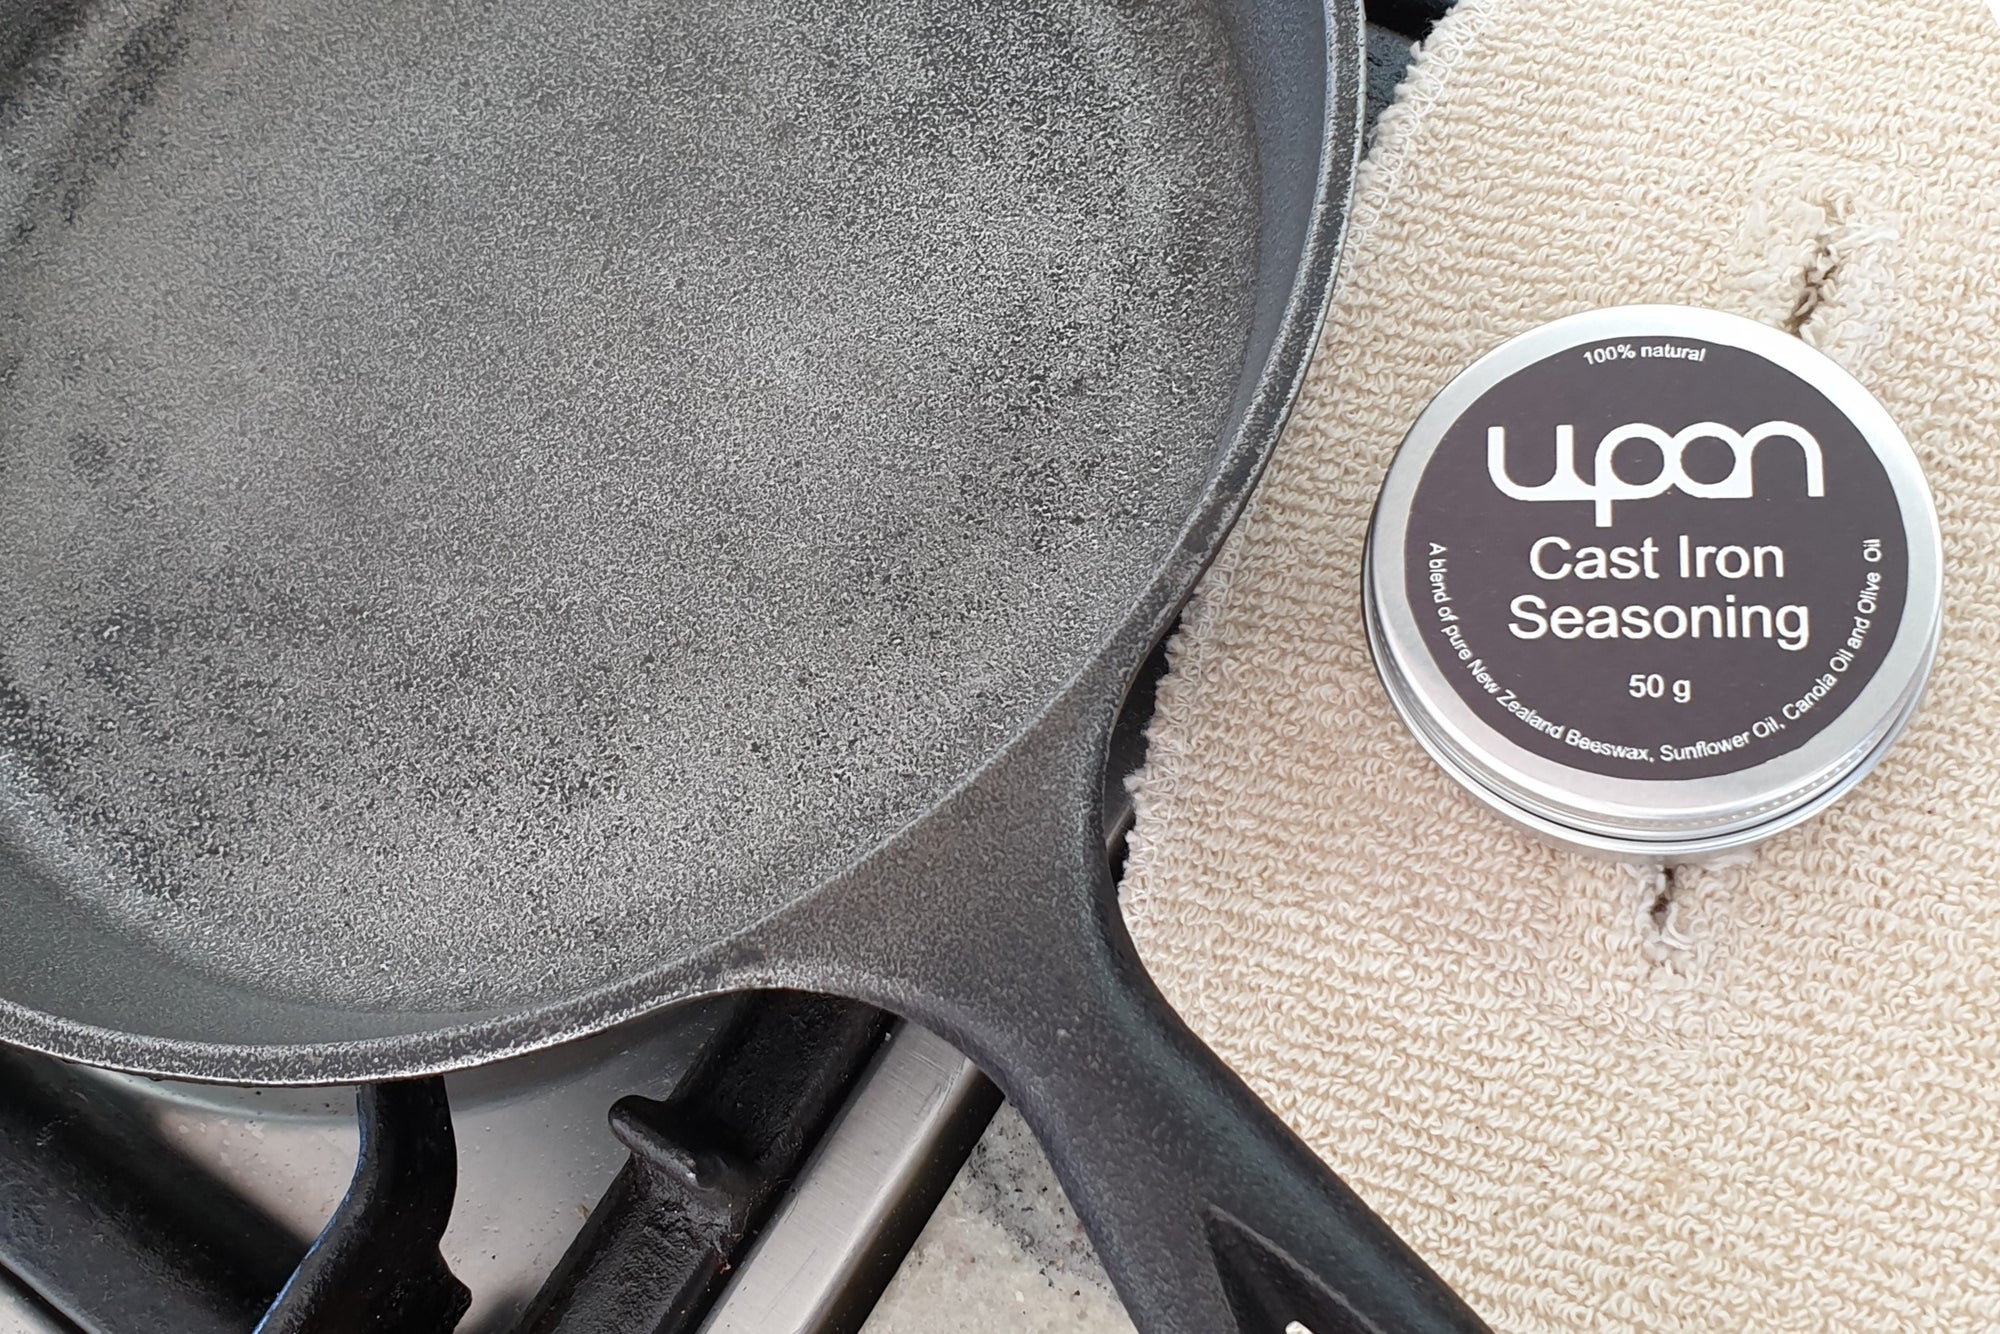 How to season your cast iron cookware